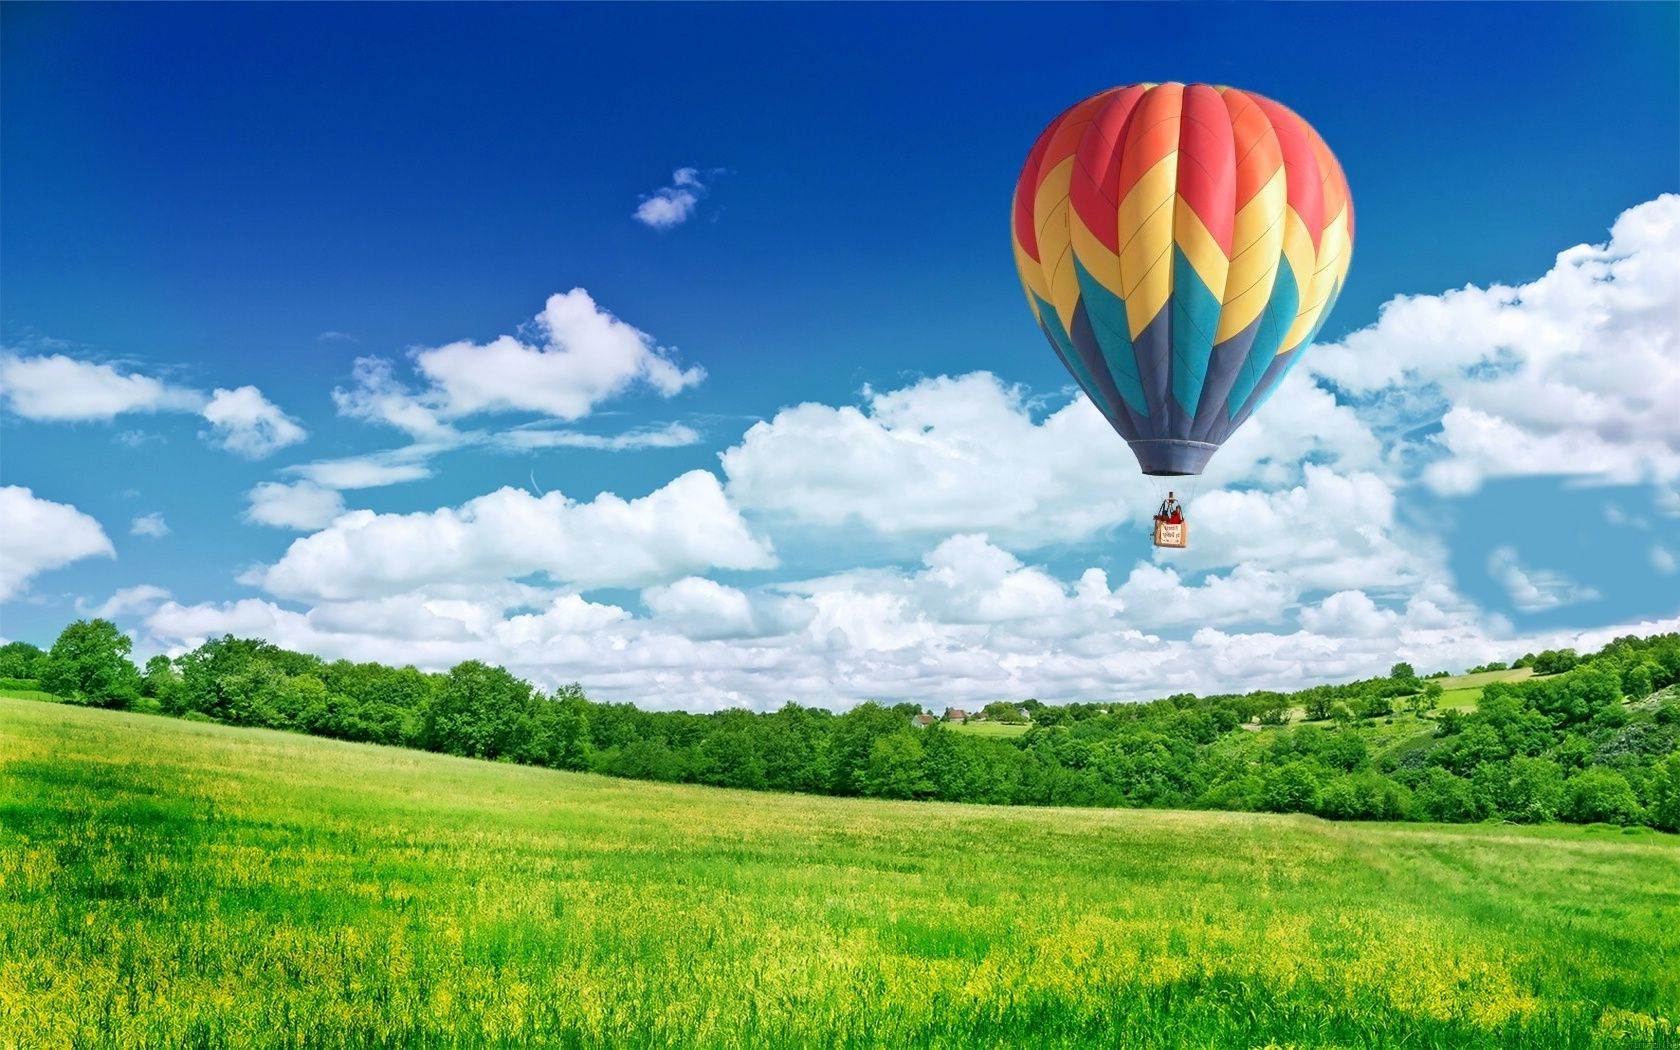 balloon_in_sky-1680x1050_20140319_1546151080